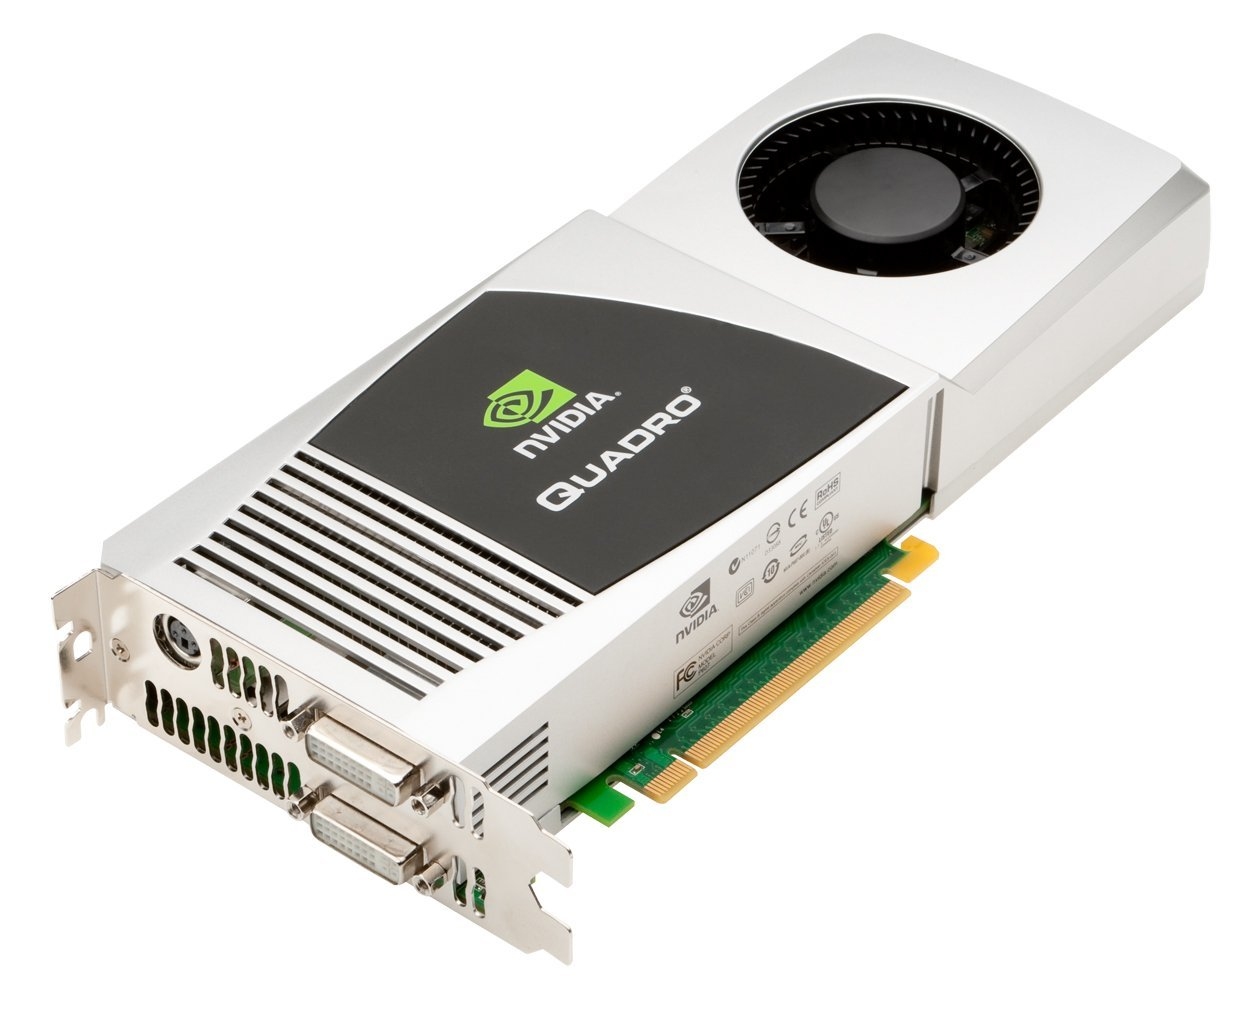 PNY VCQFX4800MACX16-PB NVIDIA Quadro FX 4800 1.5Gb GDDR3 PCI-Express 2.0 x16 Video Graphic Adapter